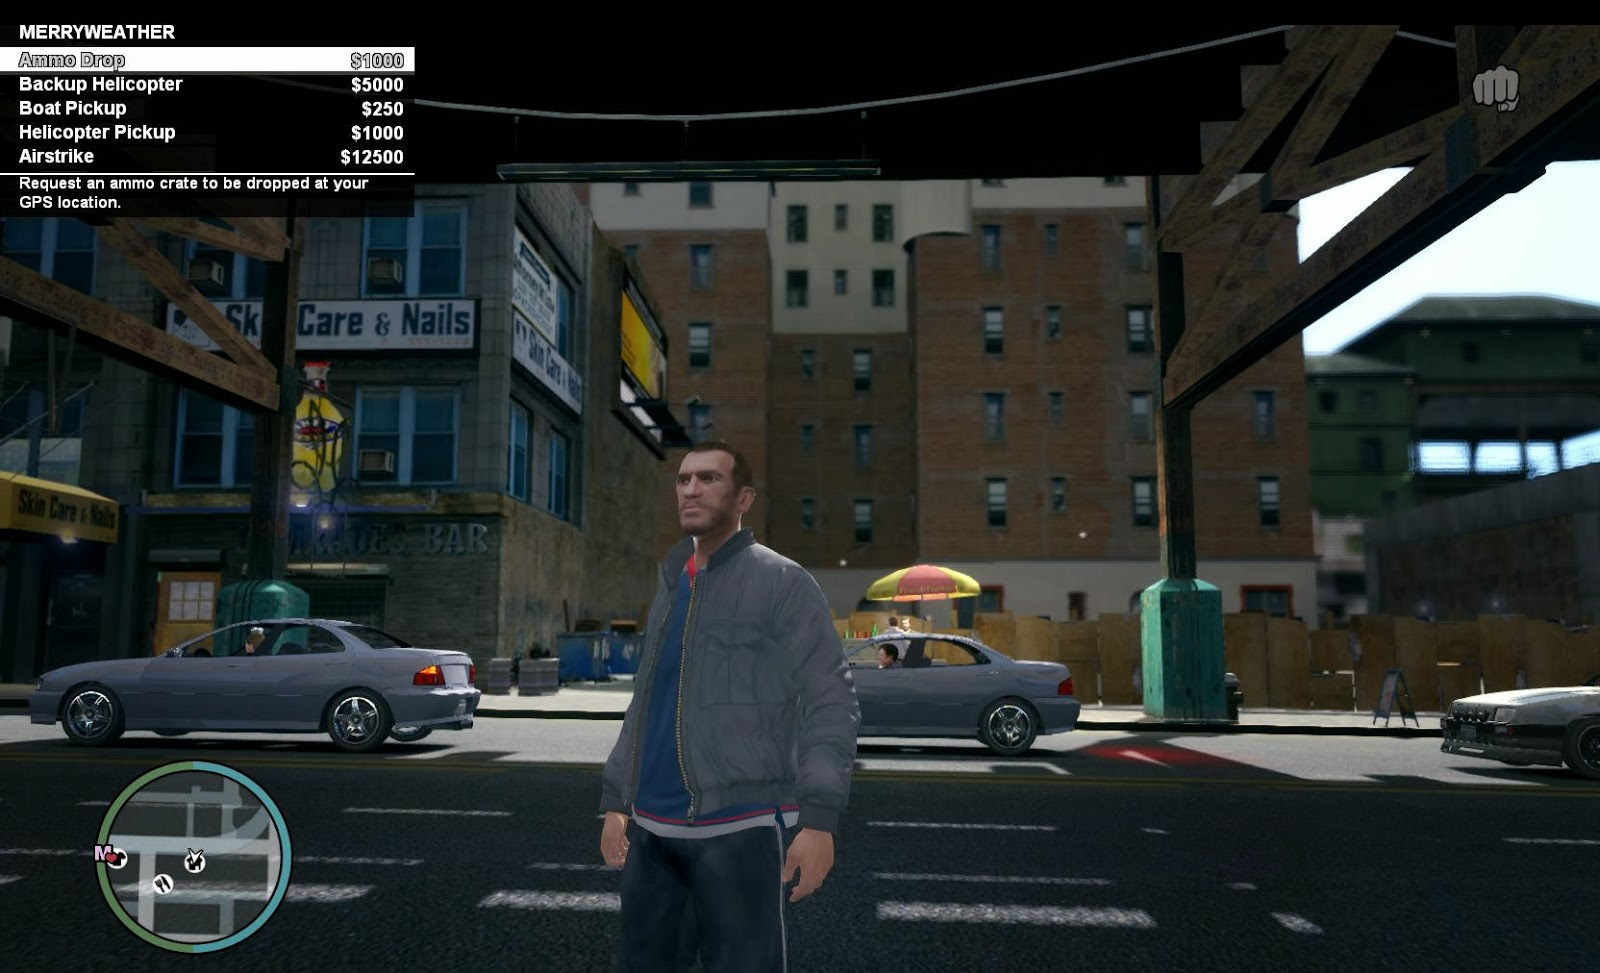 GTA X Scripting: Merryweather And Lester Special Services